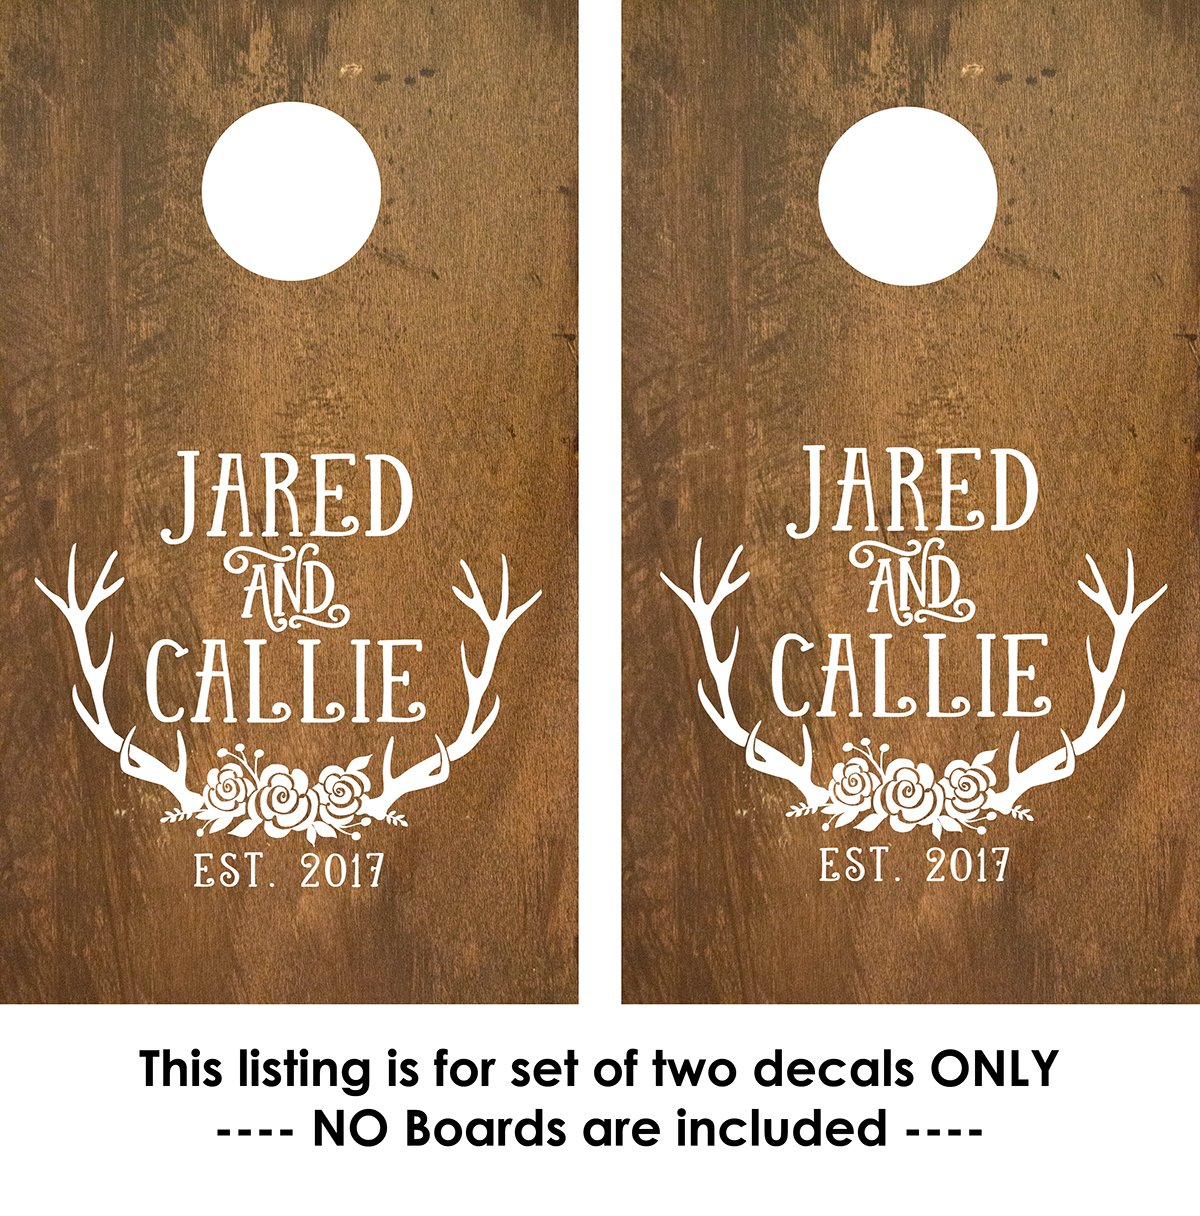 Cornhole Decals - Custom Corn Toss Decals - Decals for corn toss game - 2 Decals by Old Barn Rescue Company